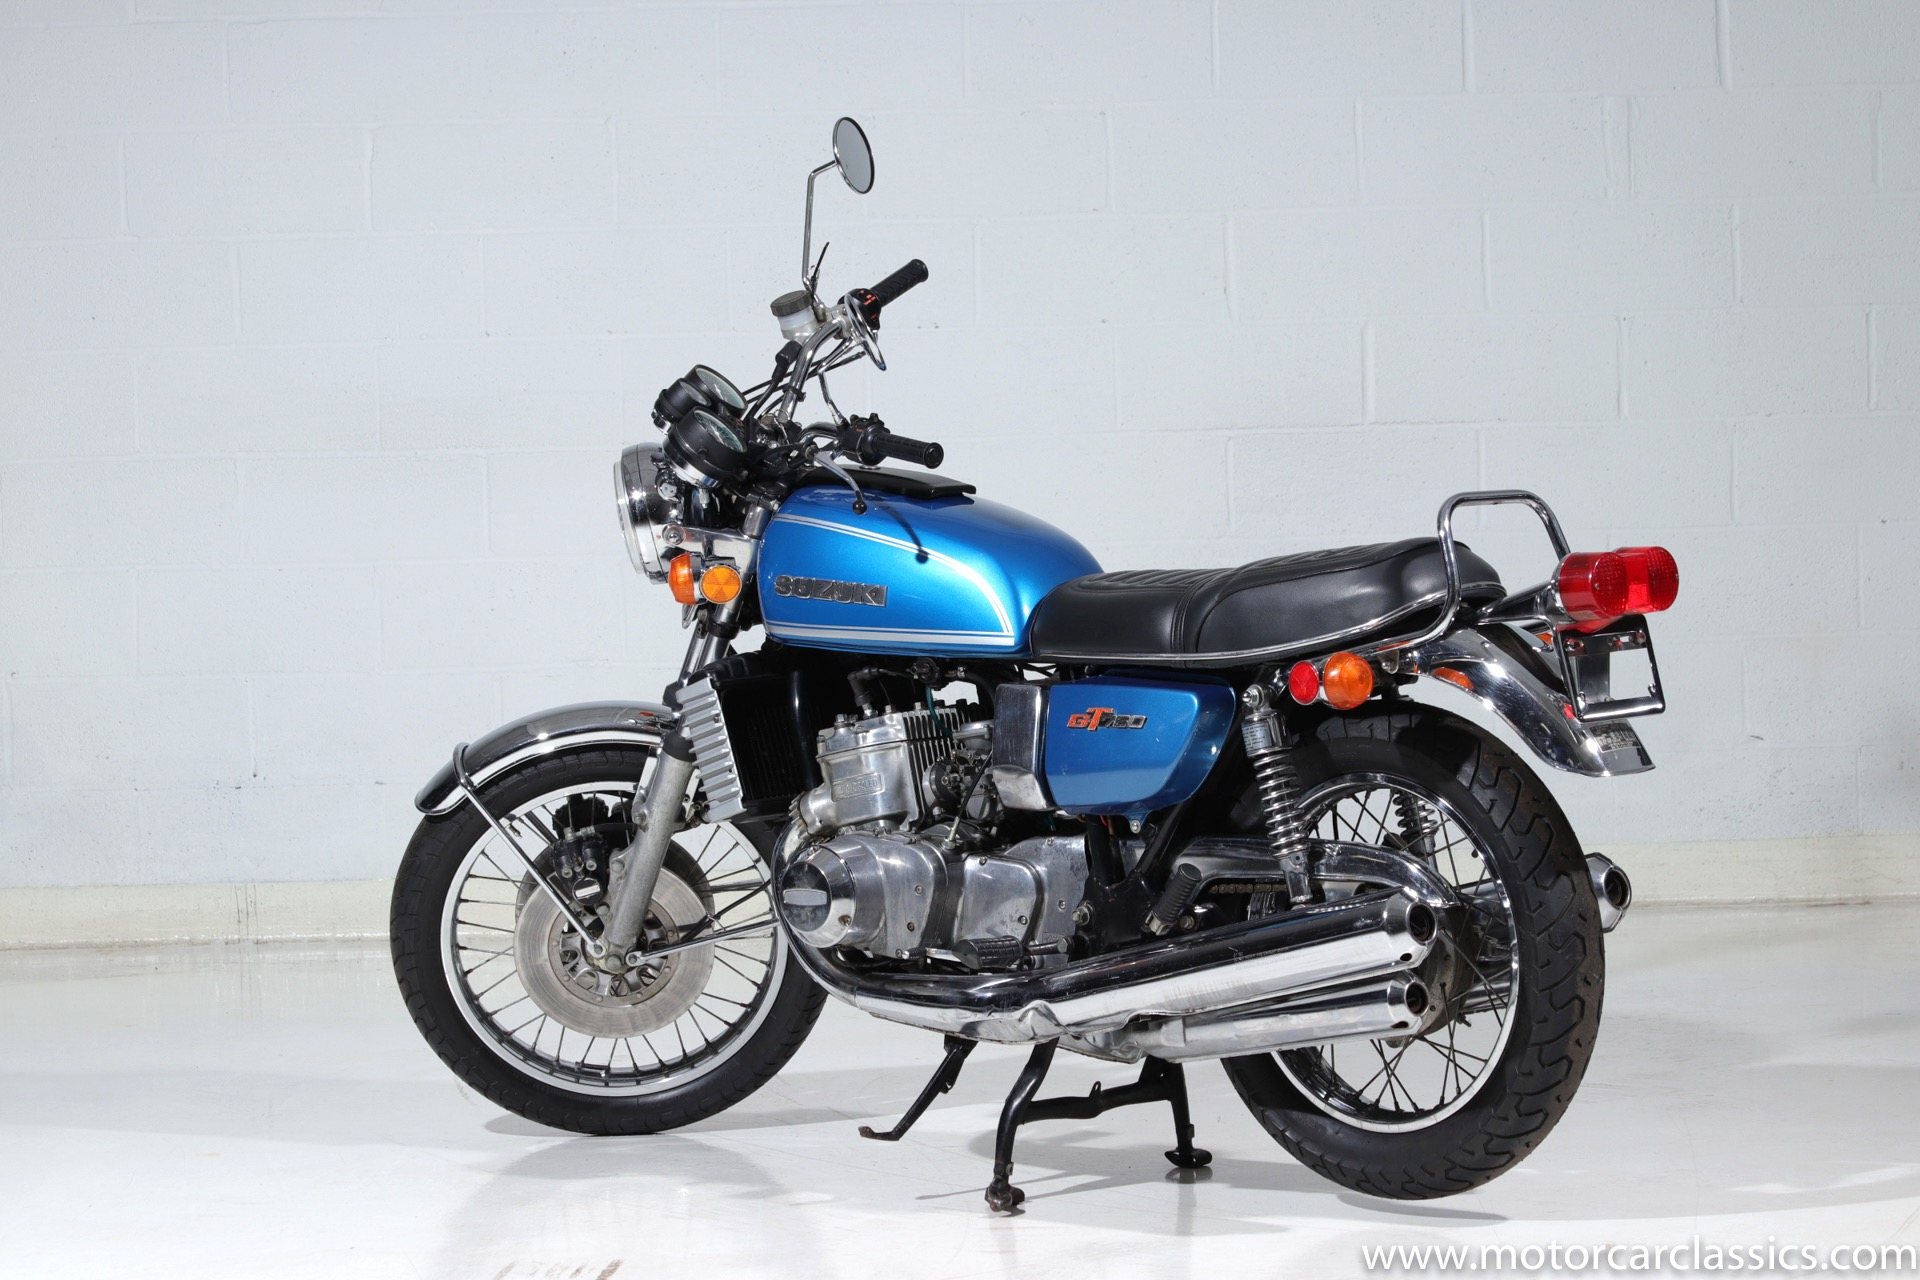 used 1975 suzuki gt 750 for sale 9 500 motorcar. Black Bedroom Furniture Sets. Home Design Ideas